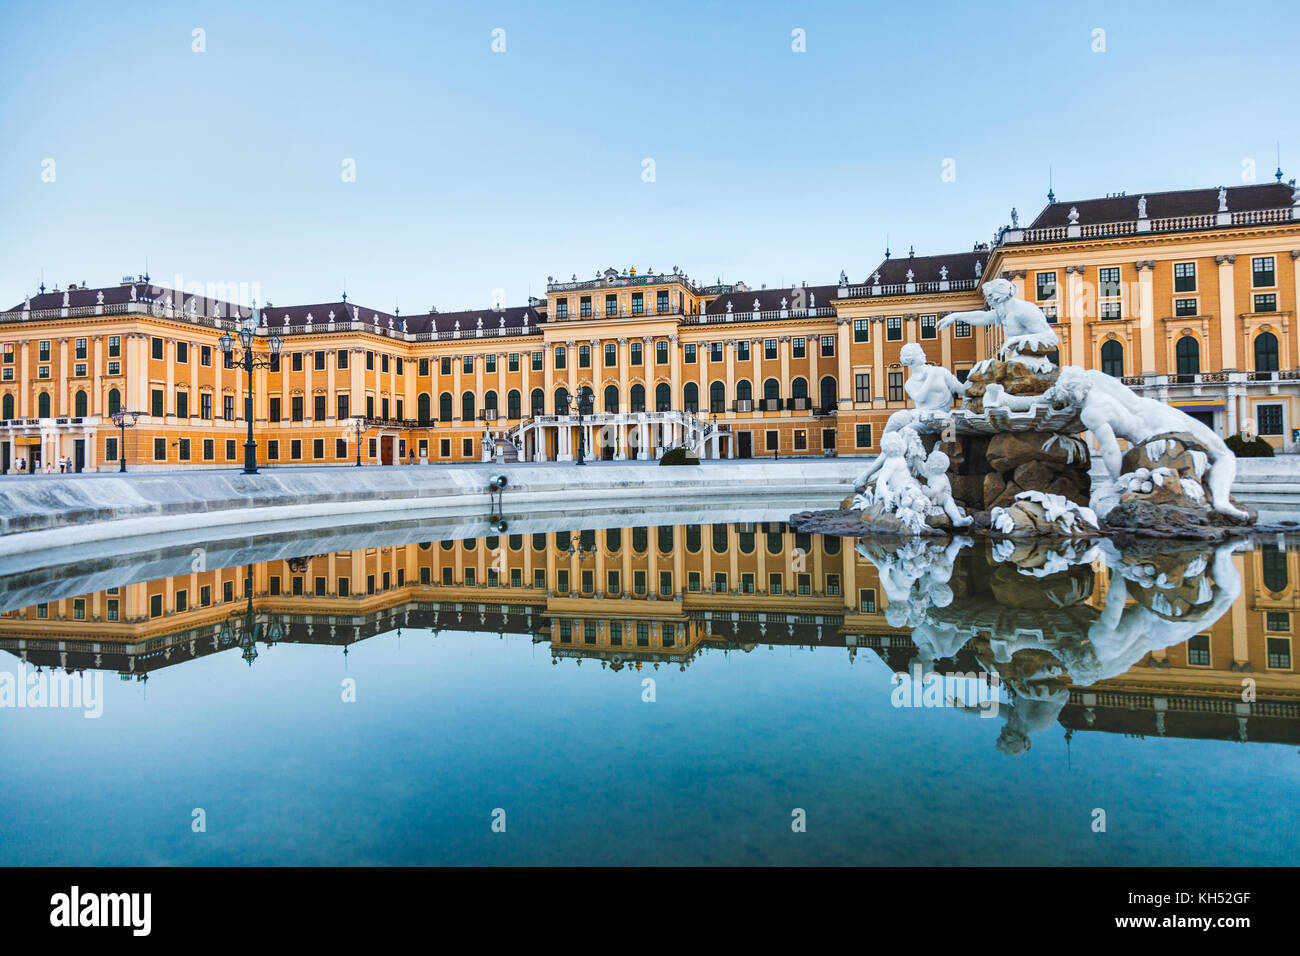 Schonbrunn Palace, imperial summer residence in Vienna, Austria - Stock Image